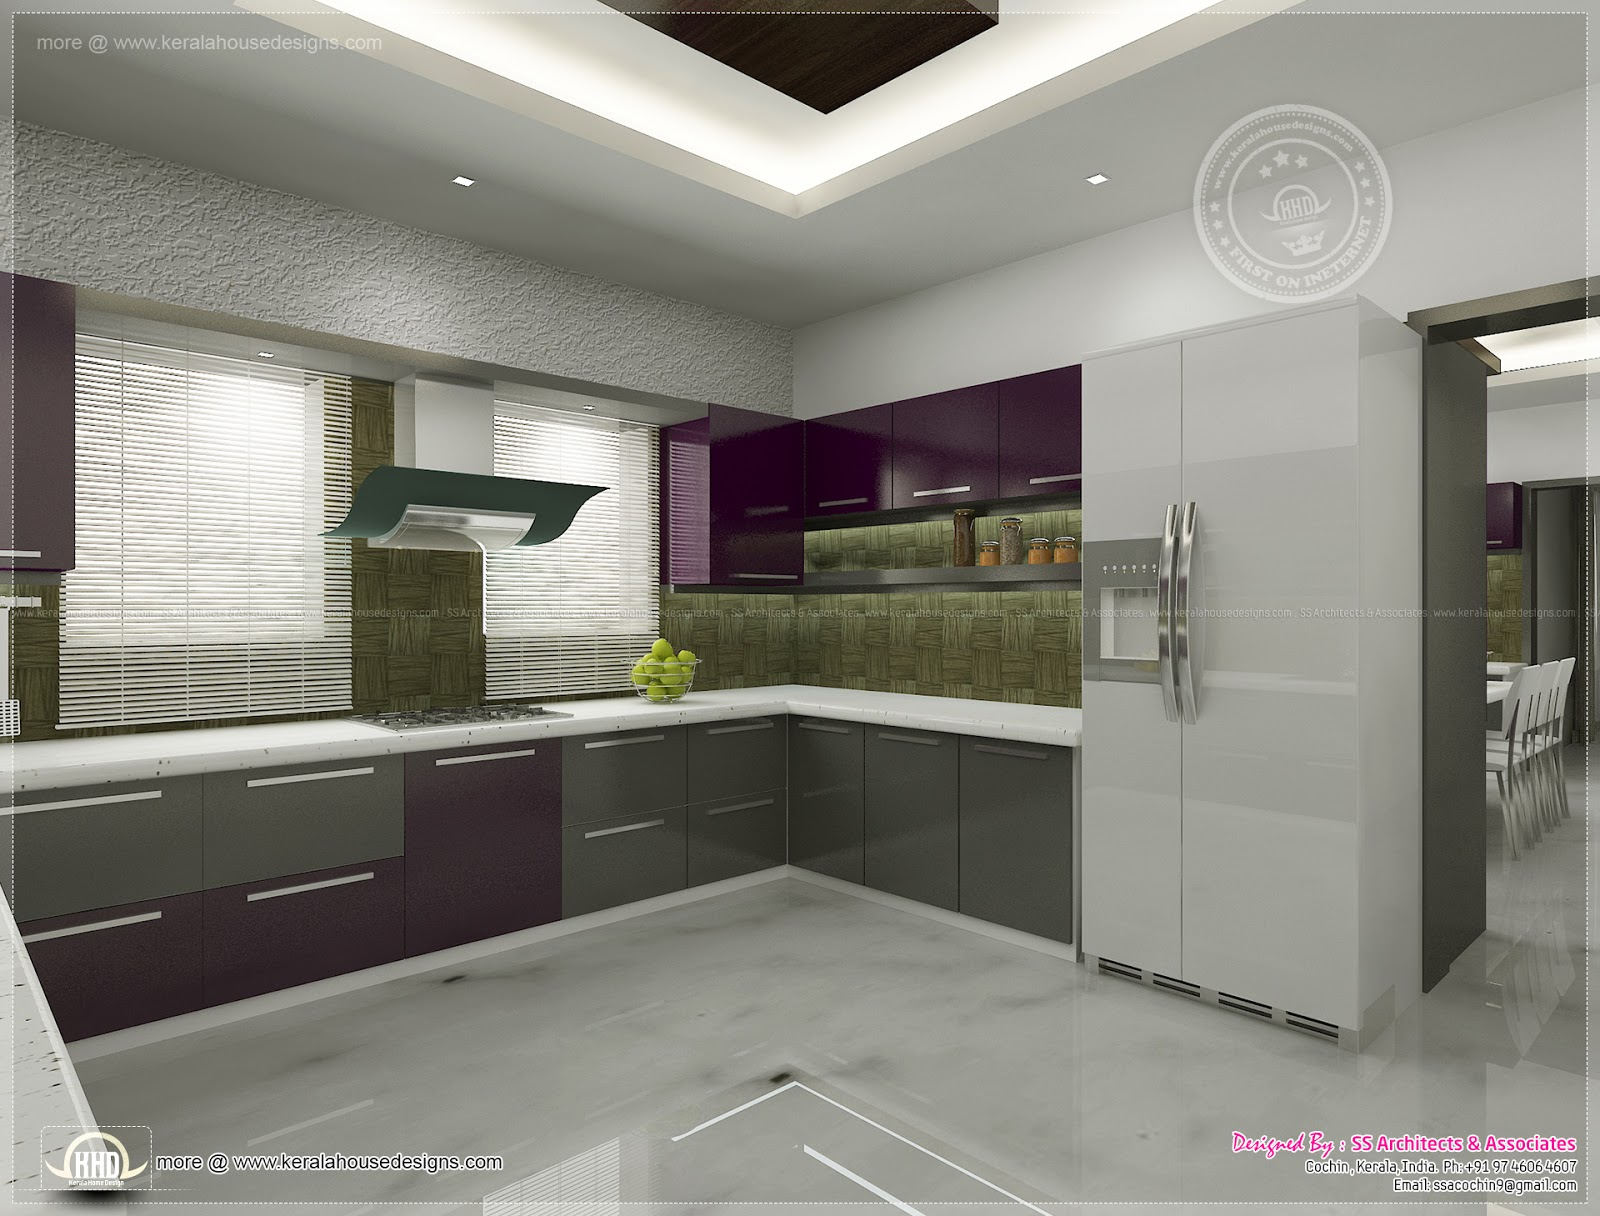 Kitchen interior views by ss architects cochin kerala for Kitchen interior decoration images